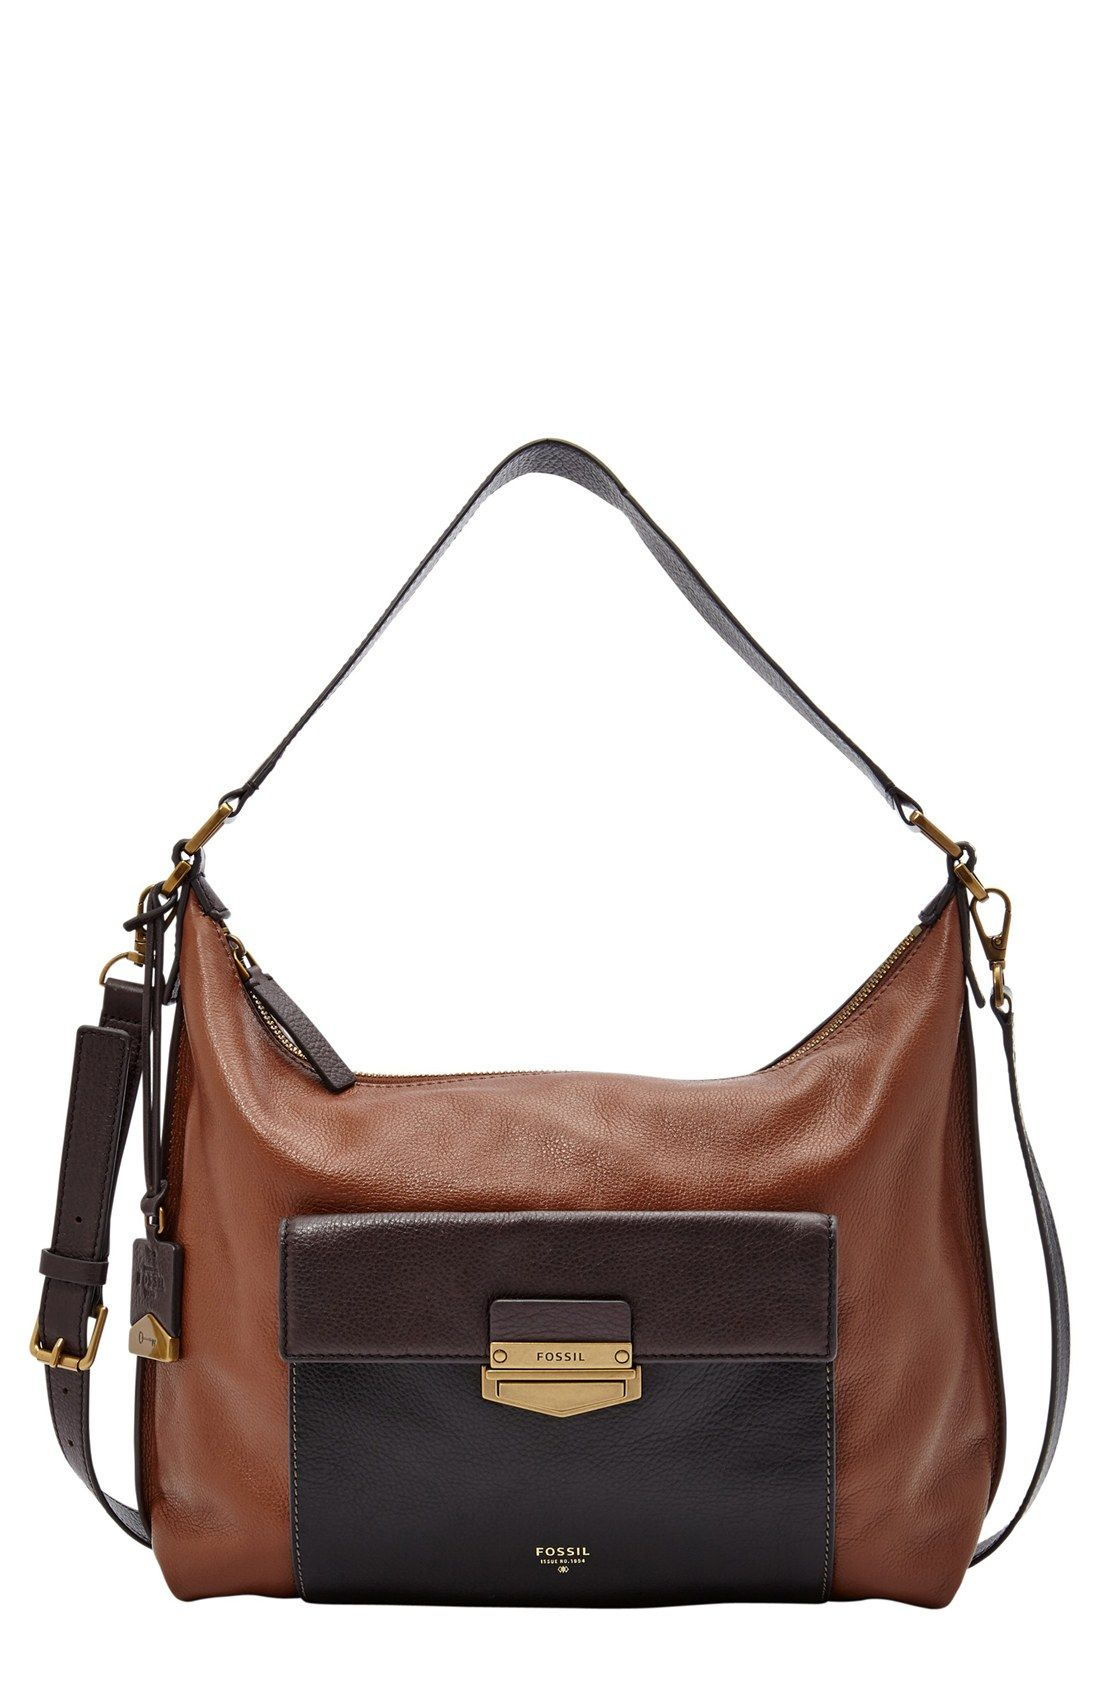 Fossil'Vickery' Leather Shoulder Bag